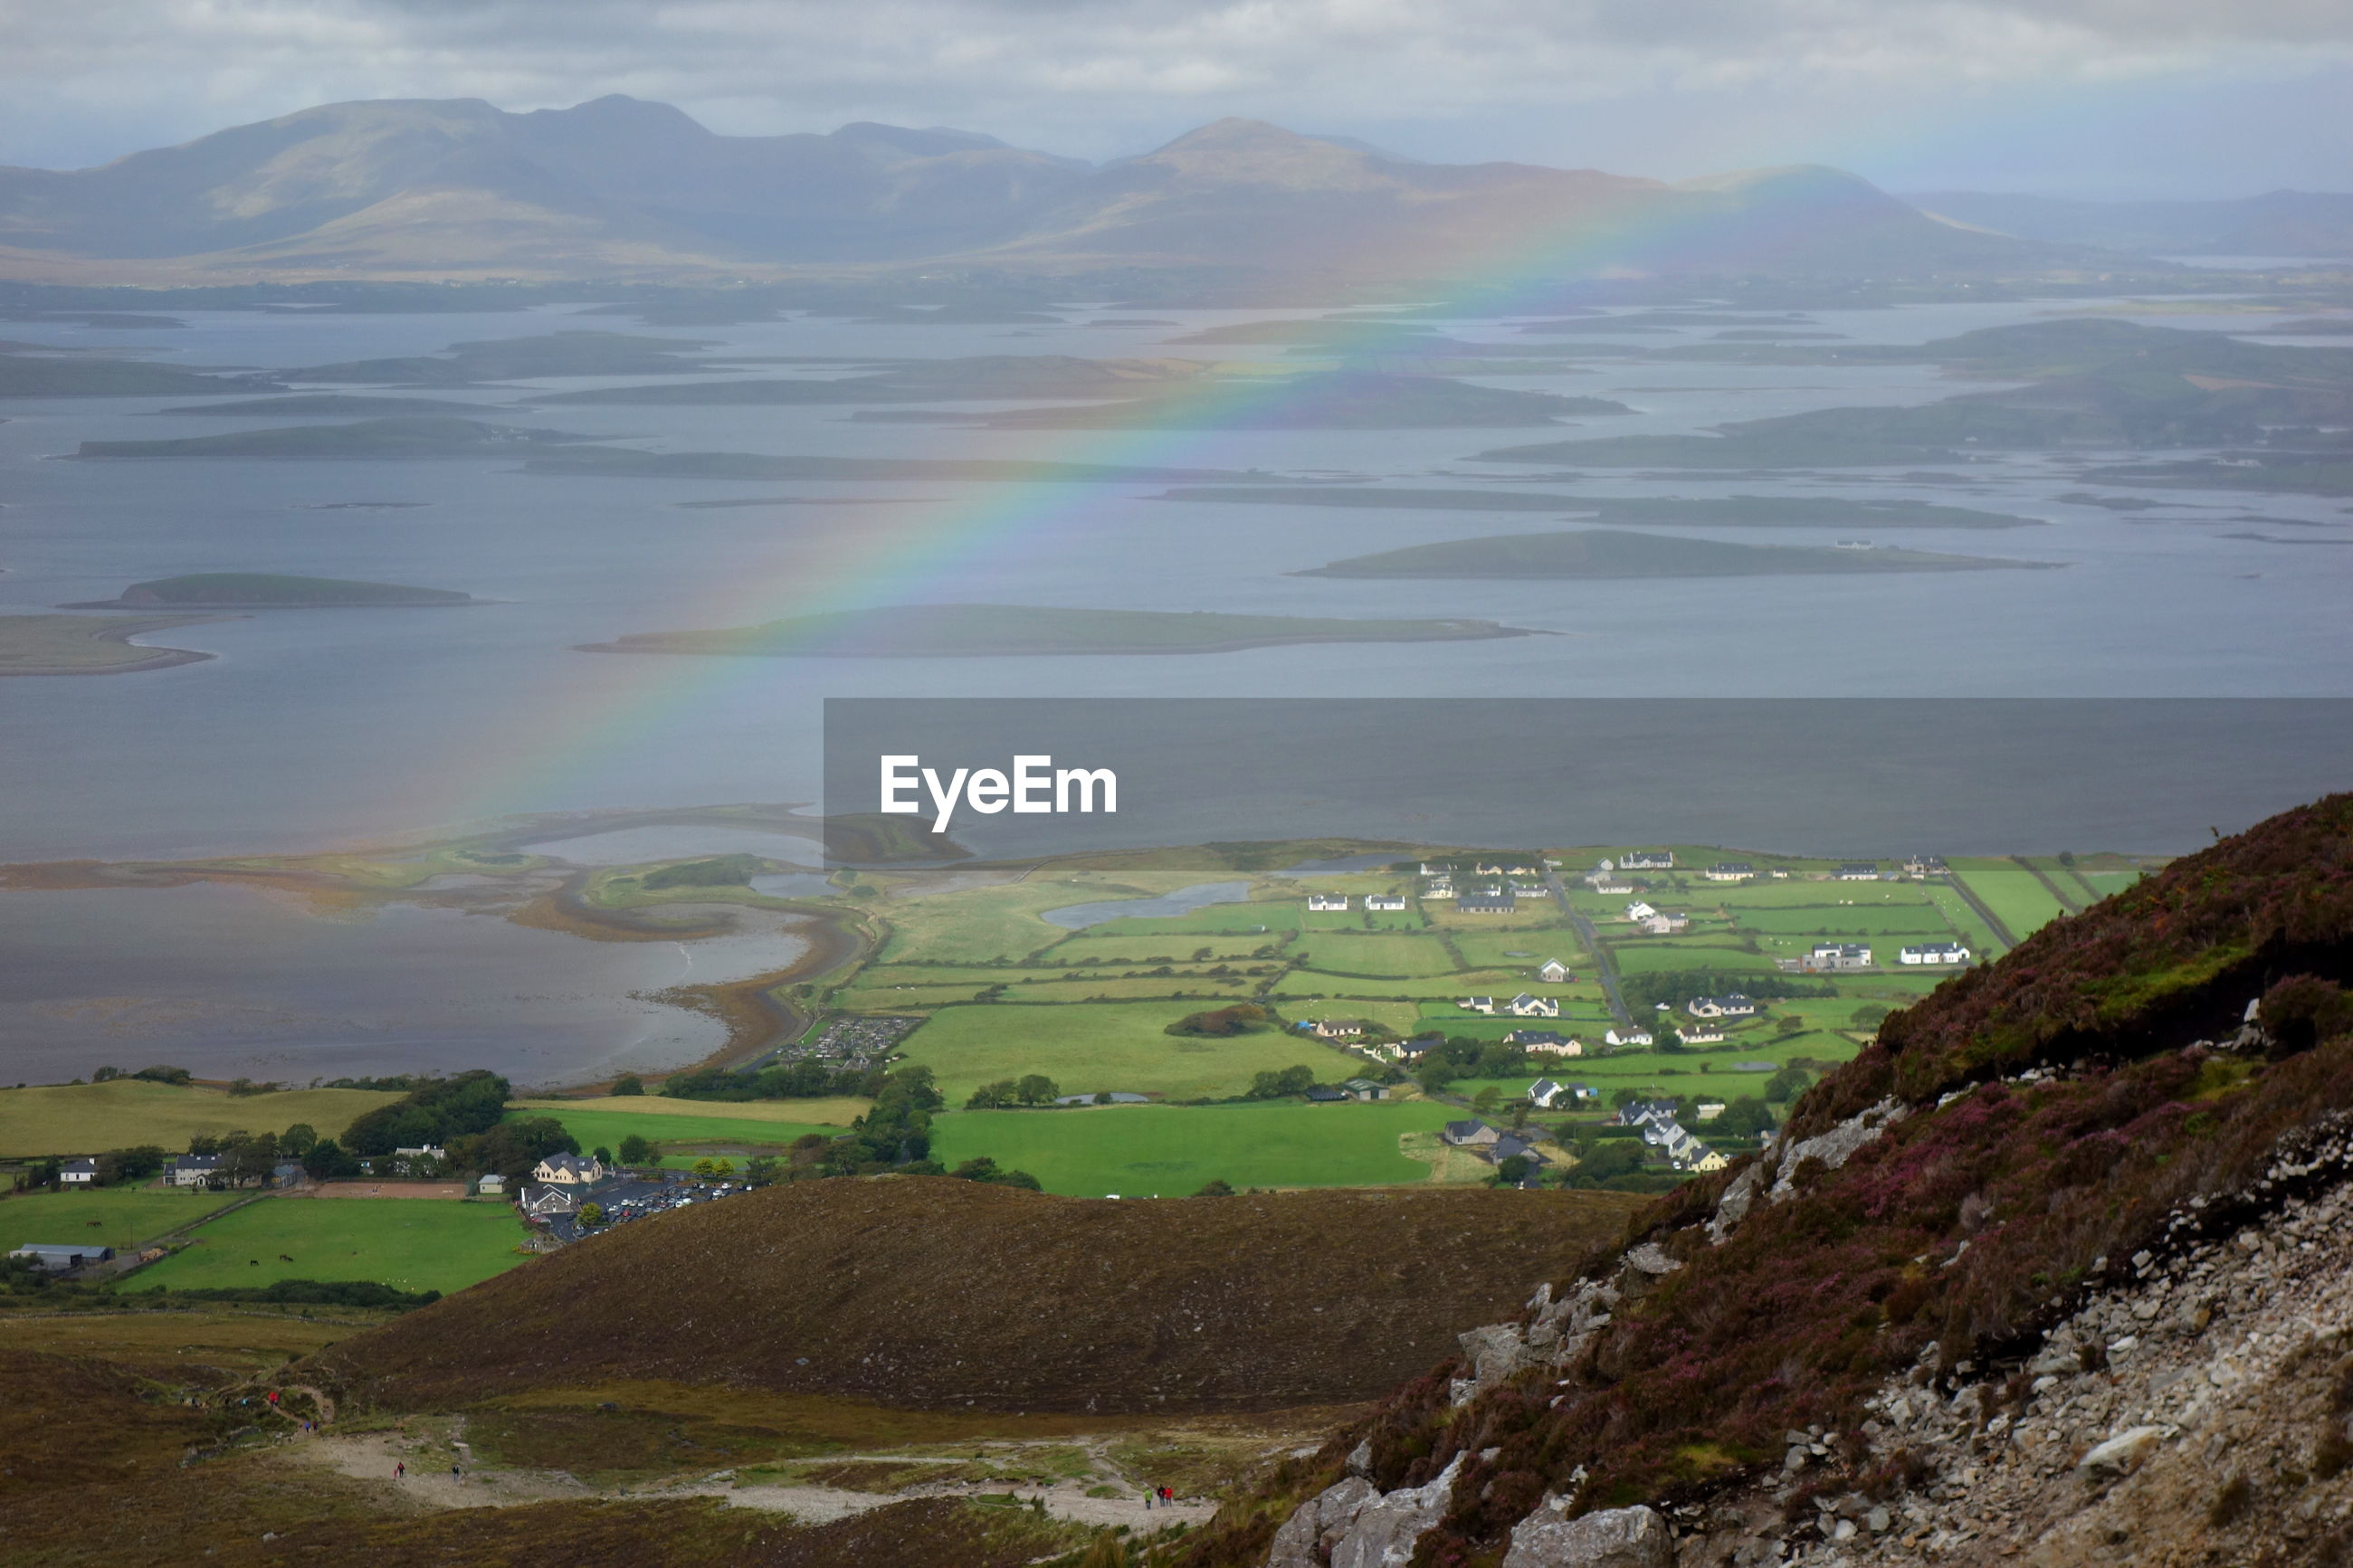 SCENIC VIEW OF RAINBOW OVER LAND AND MOUNTAINS